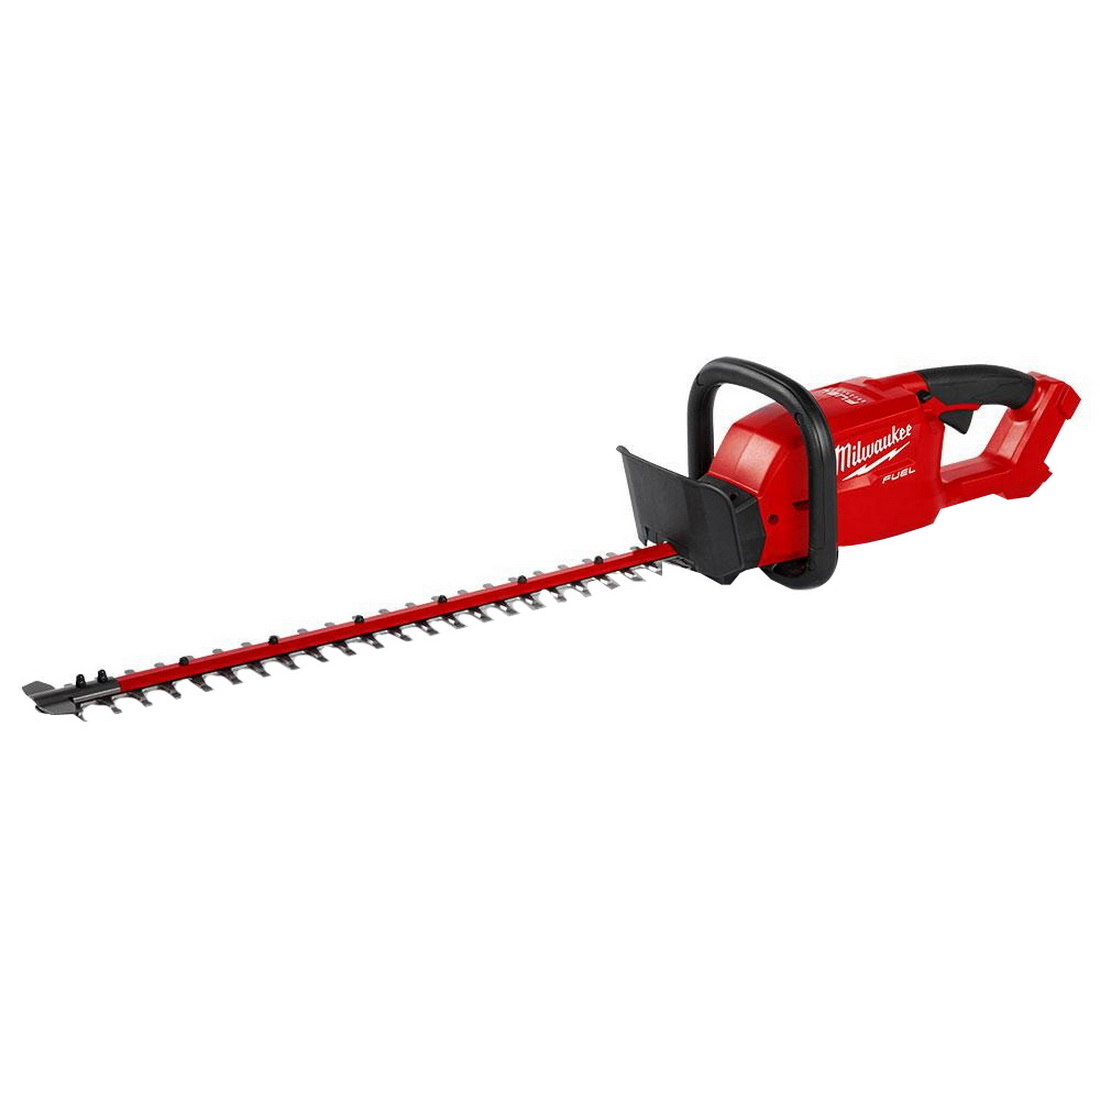 M18 FUEL Hedge Trimmer (Tool Only)